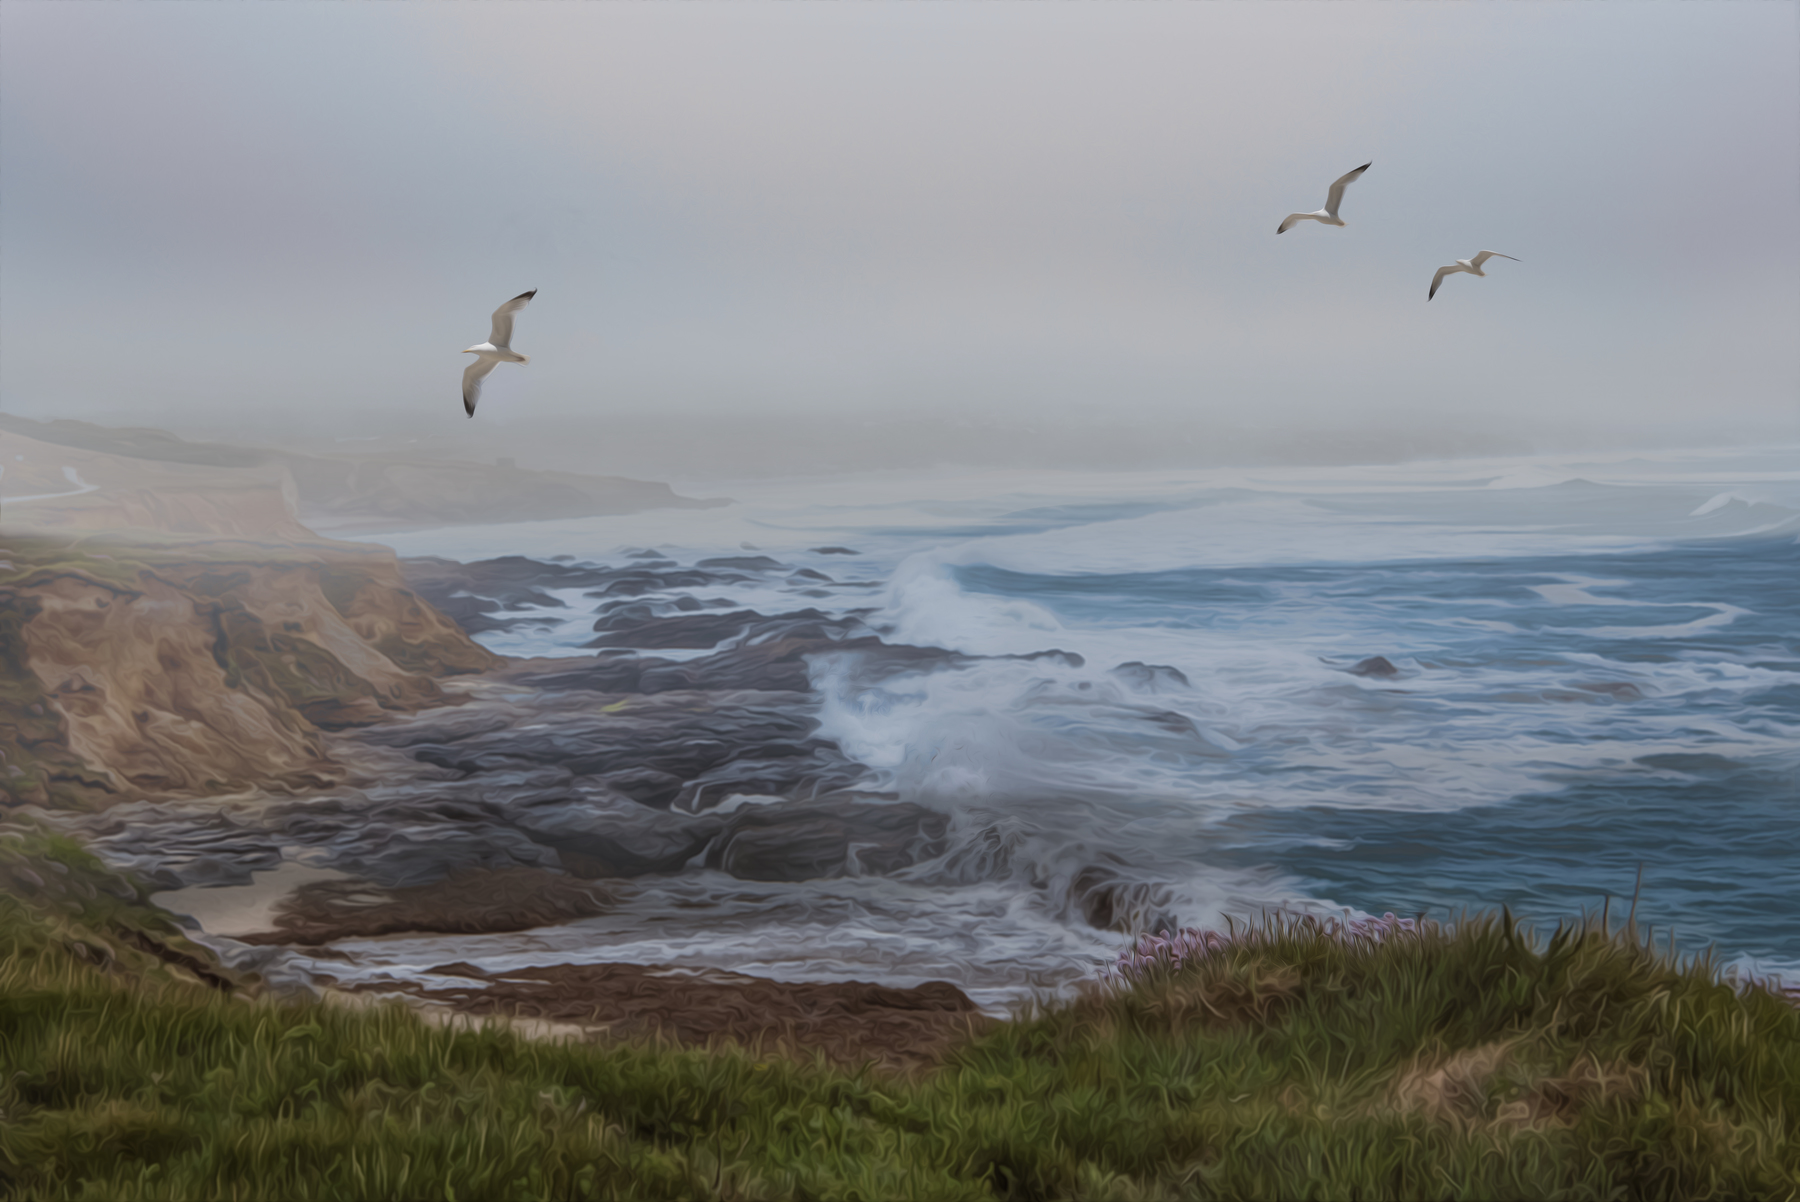 Stormy Coast By Martin Raskovsky - Digitally Manipulated Photography - (Various Sizes & Prices)